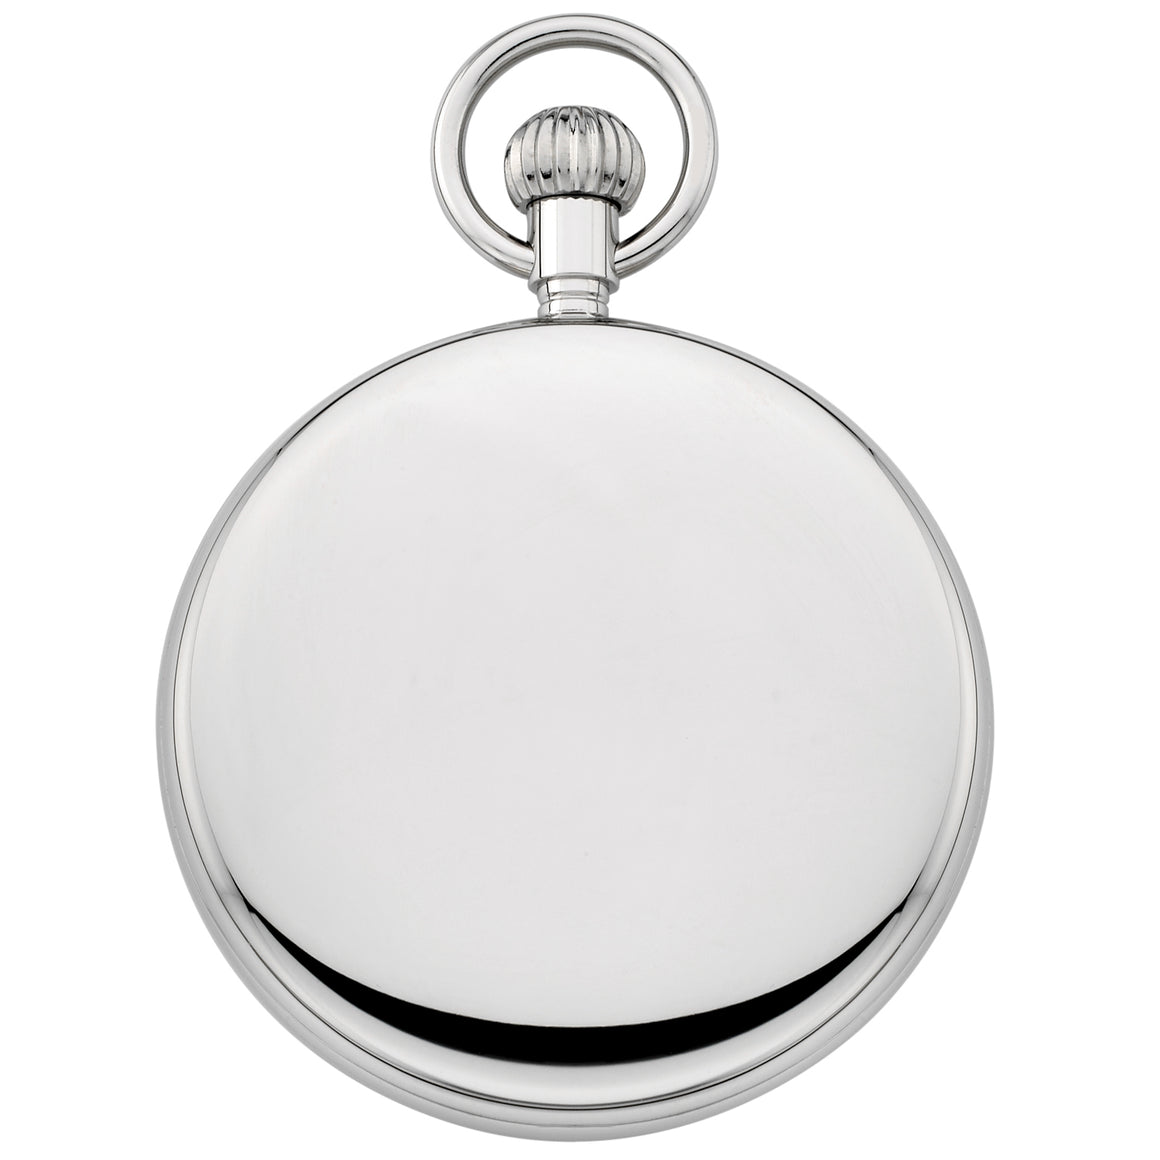 Gotham Men's Silver-Tone Mechanical Hand Wind Railroad Pocket Watch # GWC14102S - Gotham Watch